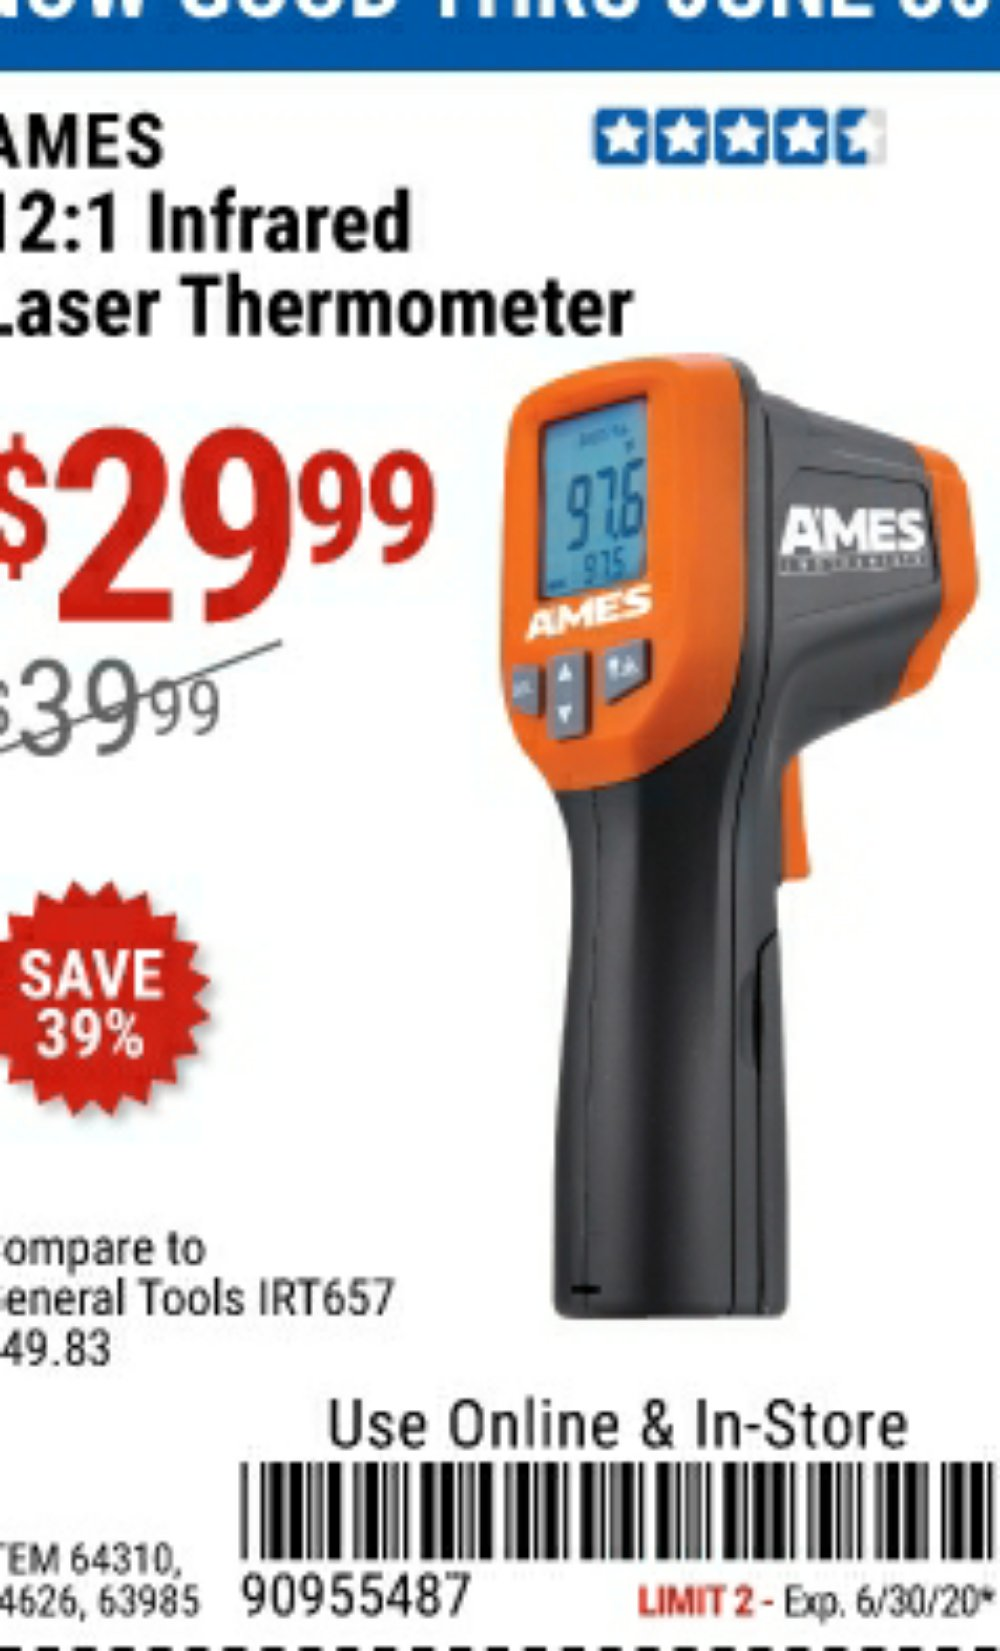 Harbor Freight Coupon, HF Coupons - 12:1 Infrared Laser Thermometer